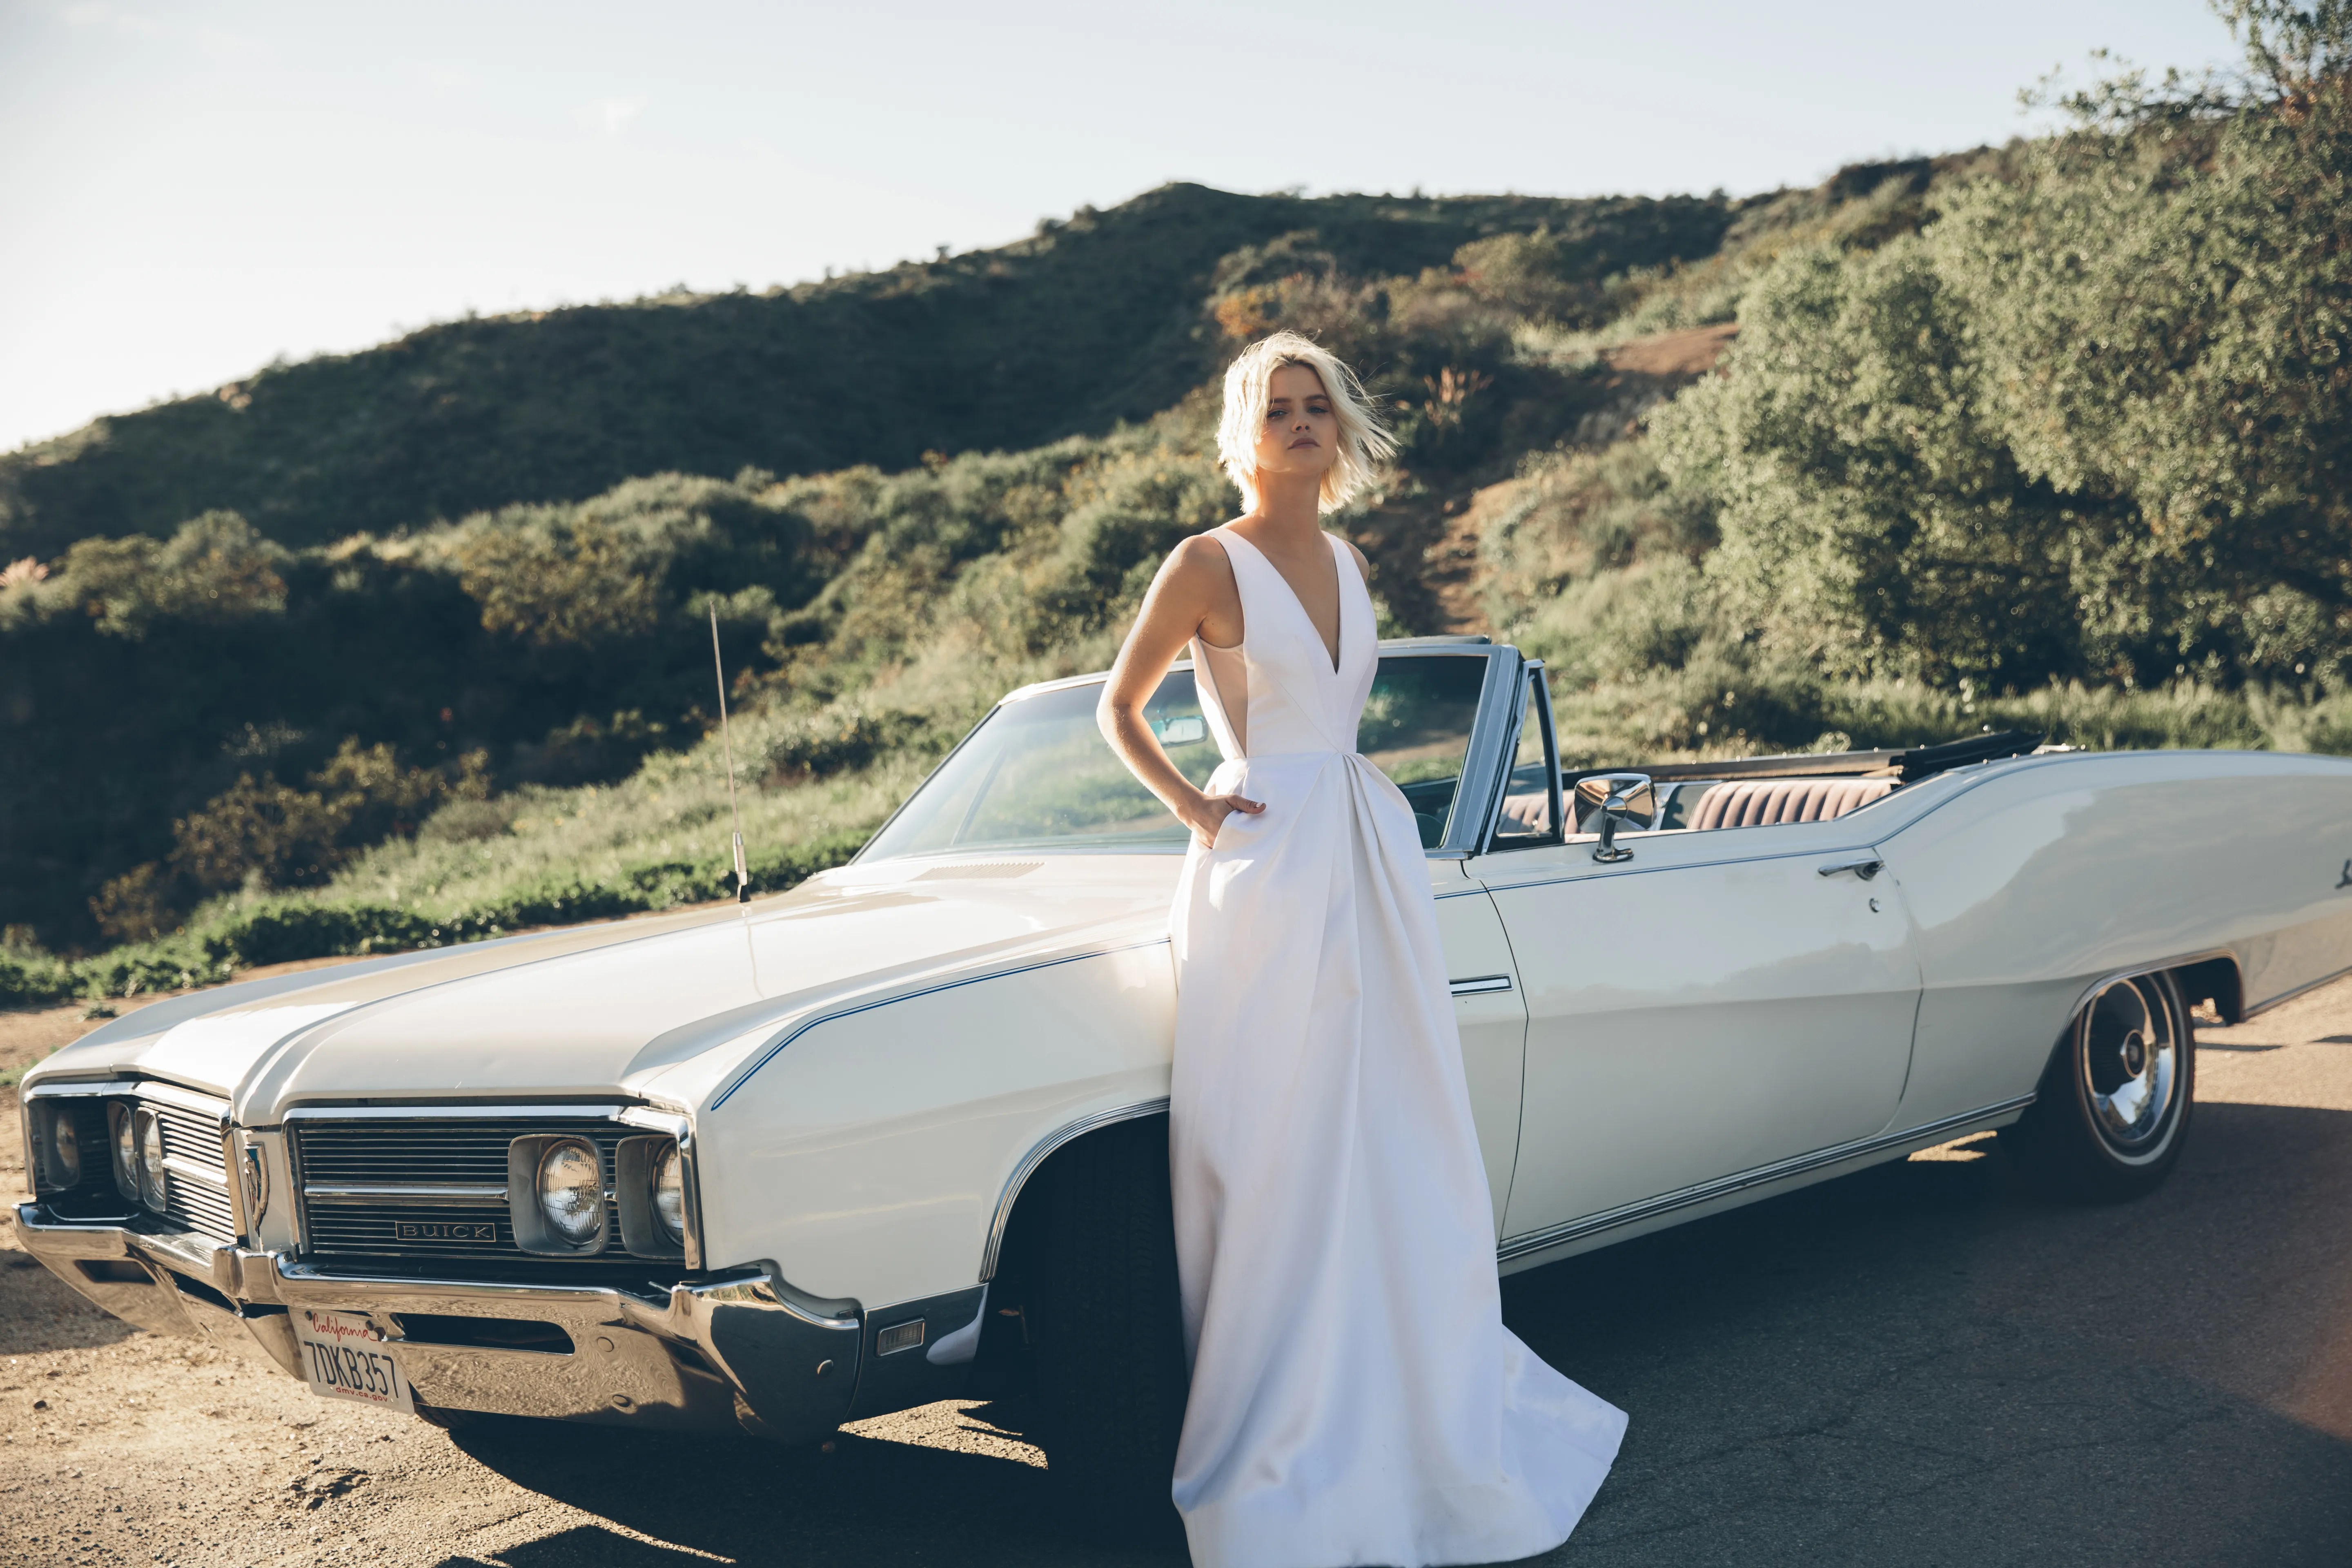 So, Now You Can Design Your Own Wedding Dress Online